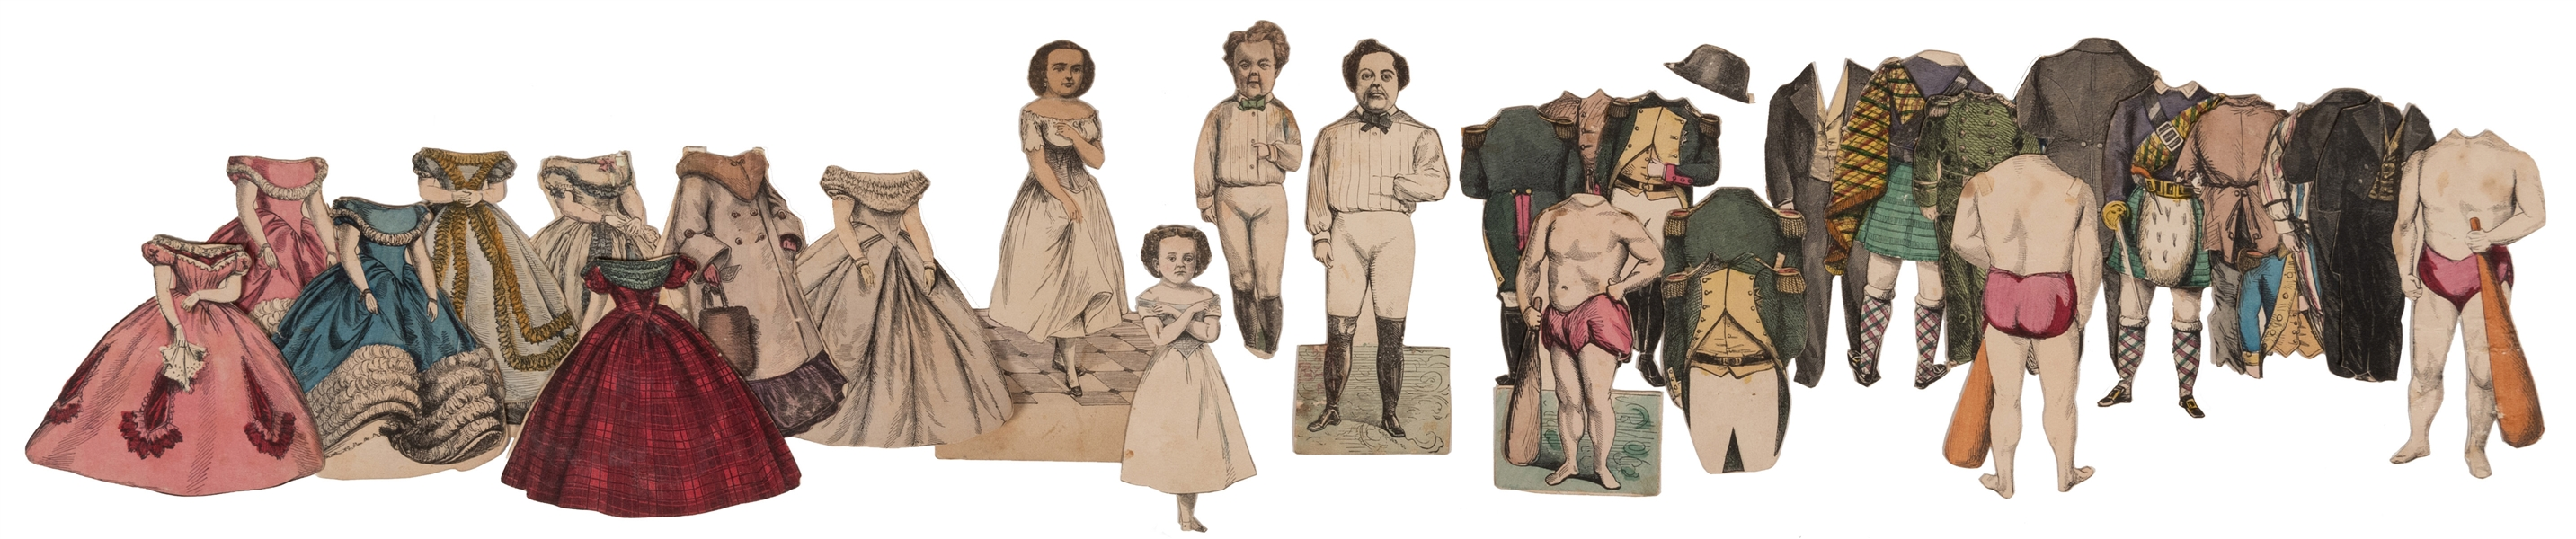 McLoughlin Bros. Paper Dolls of Mr. and Mrs. Tom Thumb.